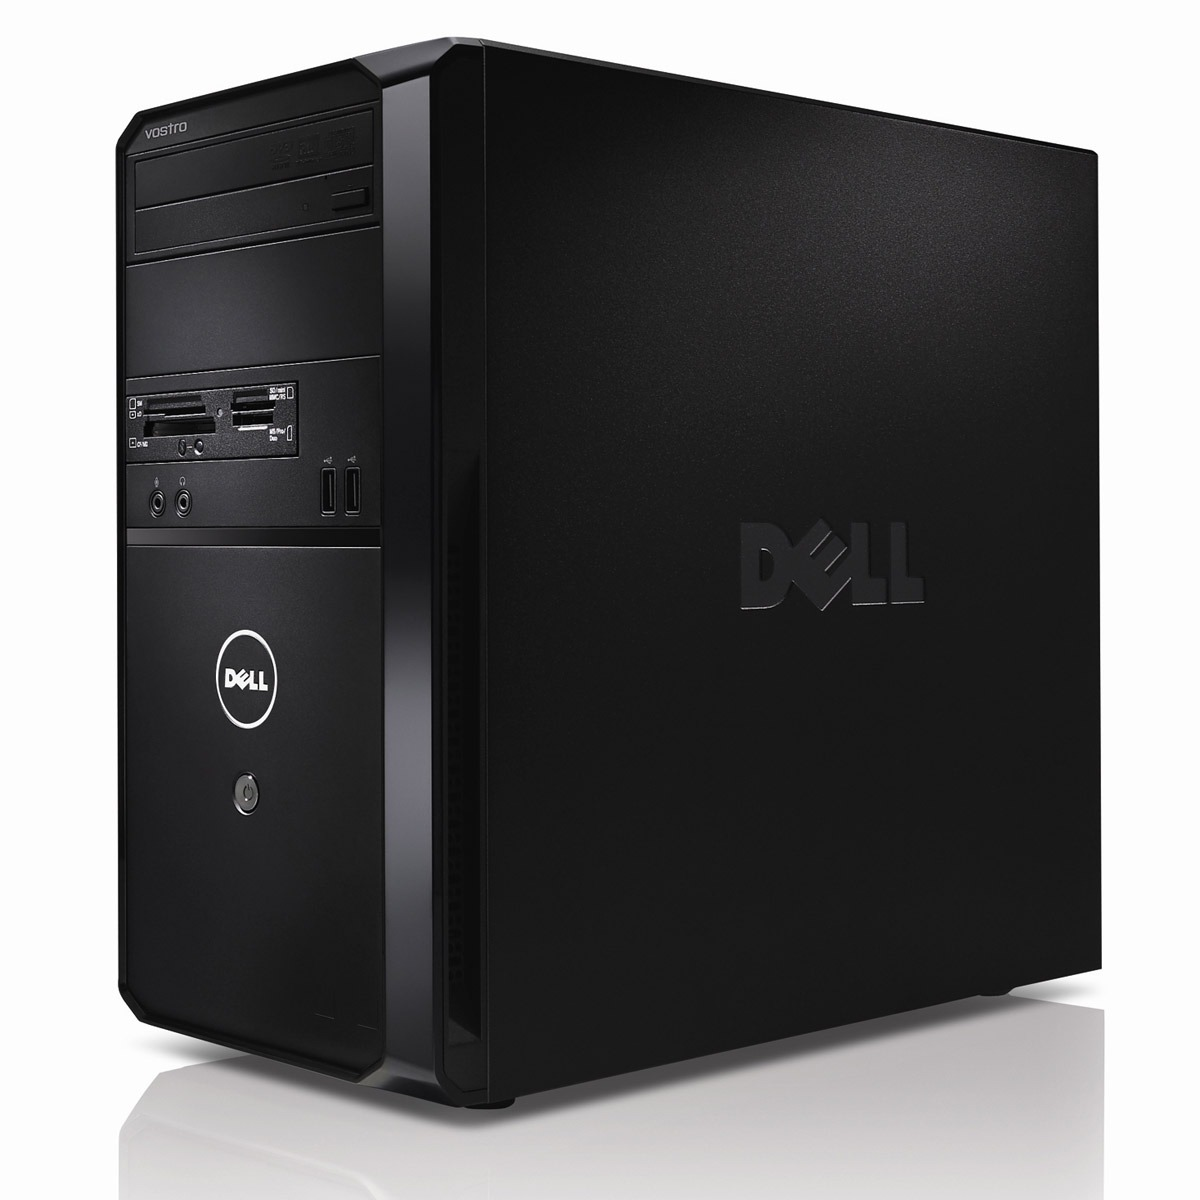 dell vostro 230 mt pc de bureau dell sur. Black Bedroom Furniture Sets. Home Design Ideas